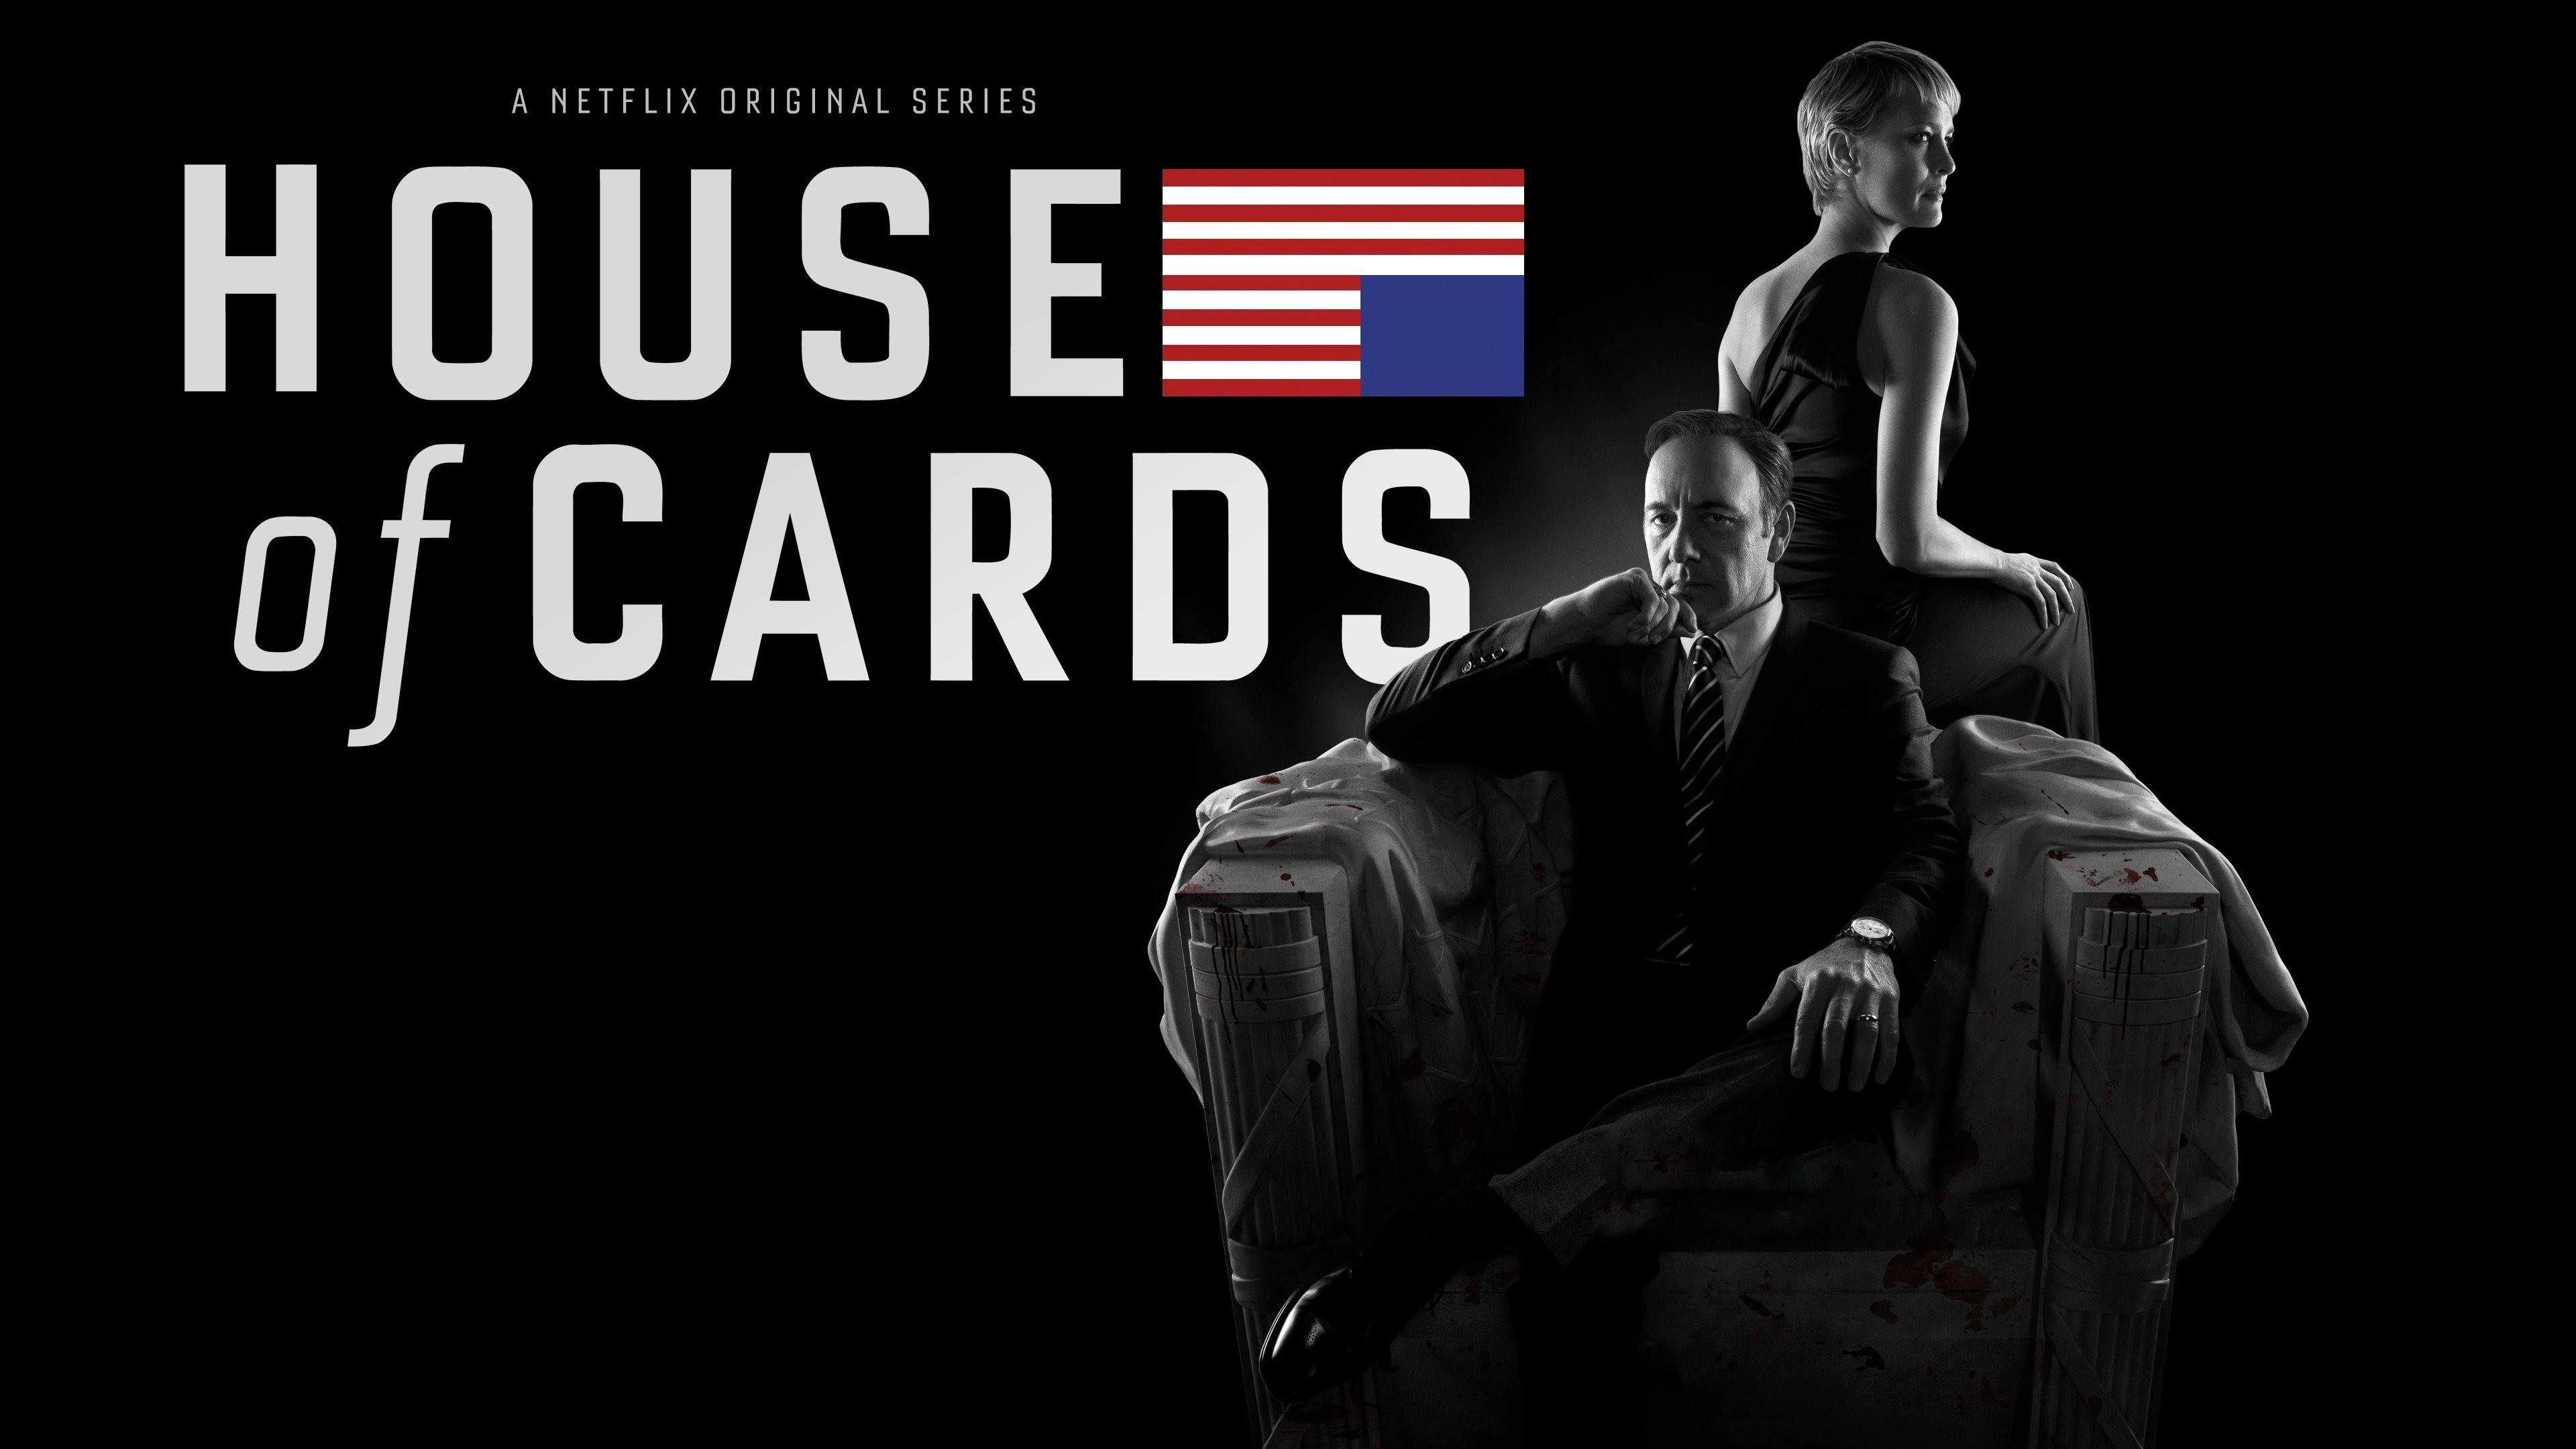 House Of Cards HD Wallpapers : Get Free top quality House Of Cards HD  Wallpapers for